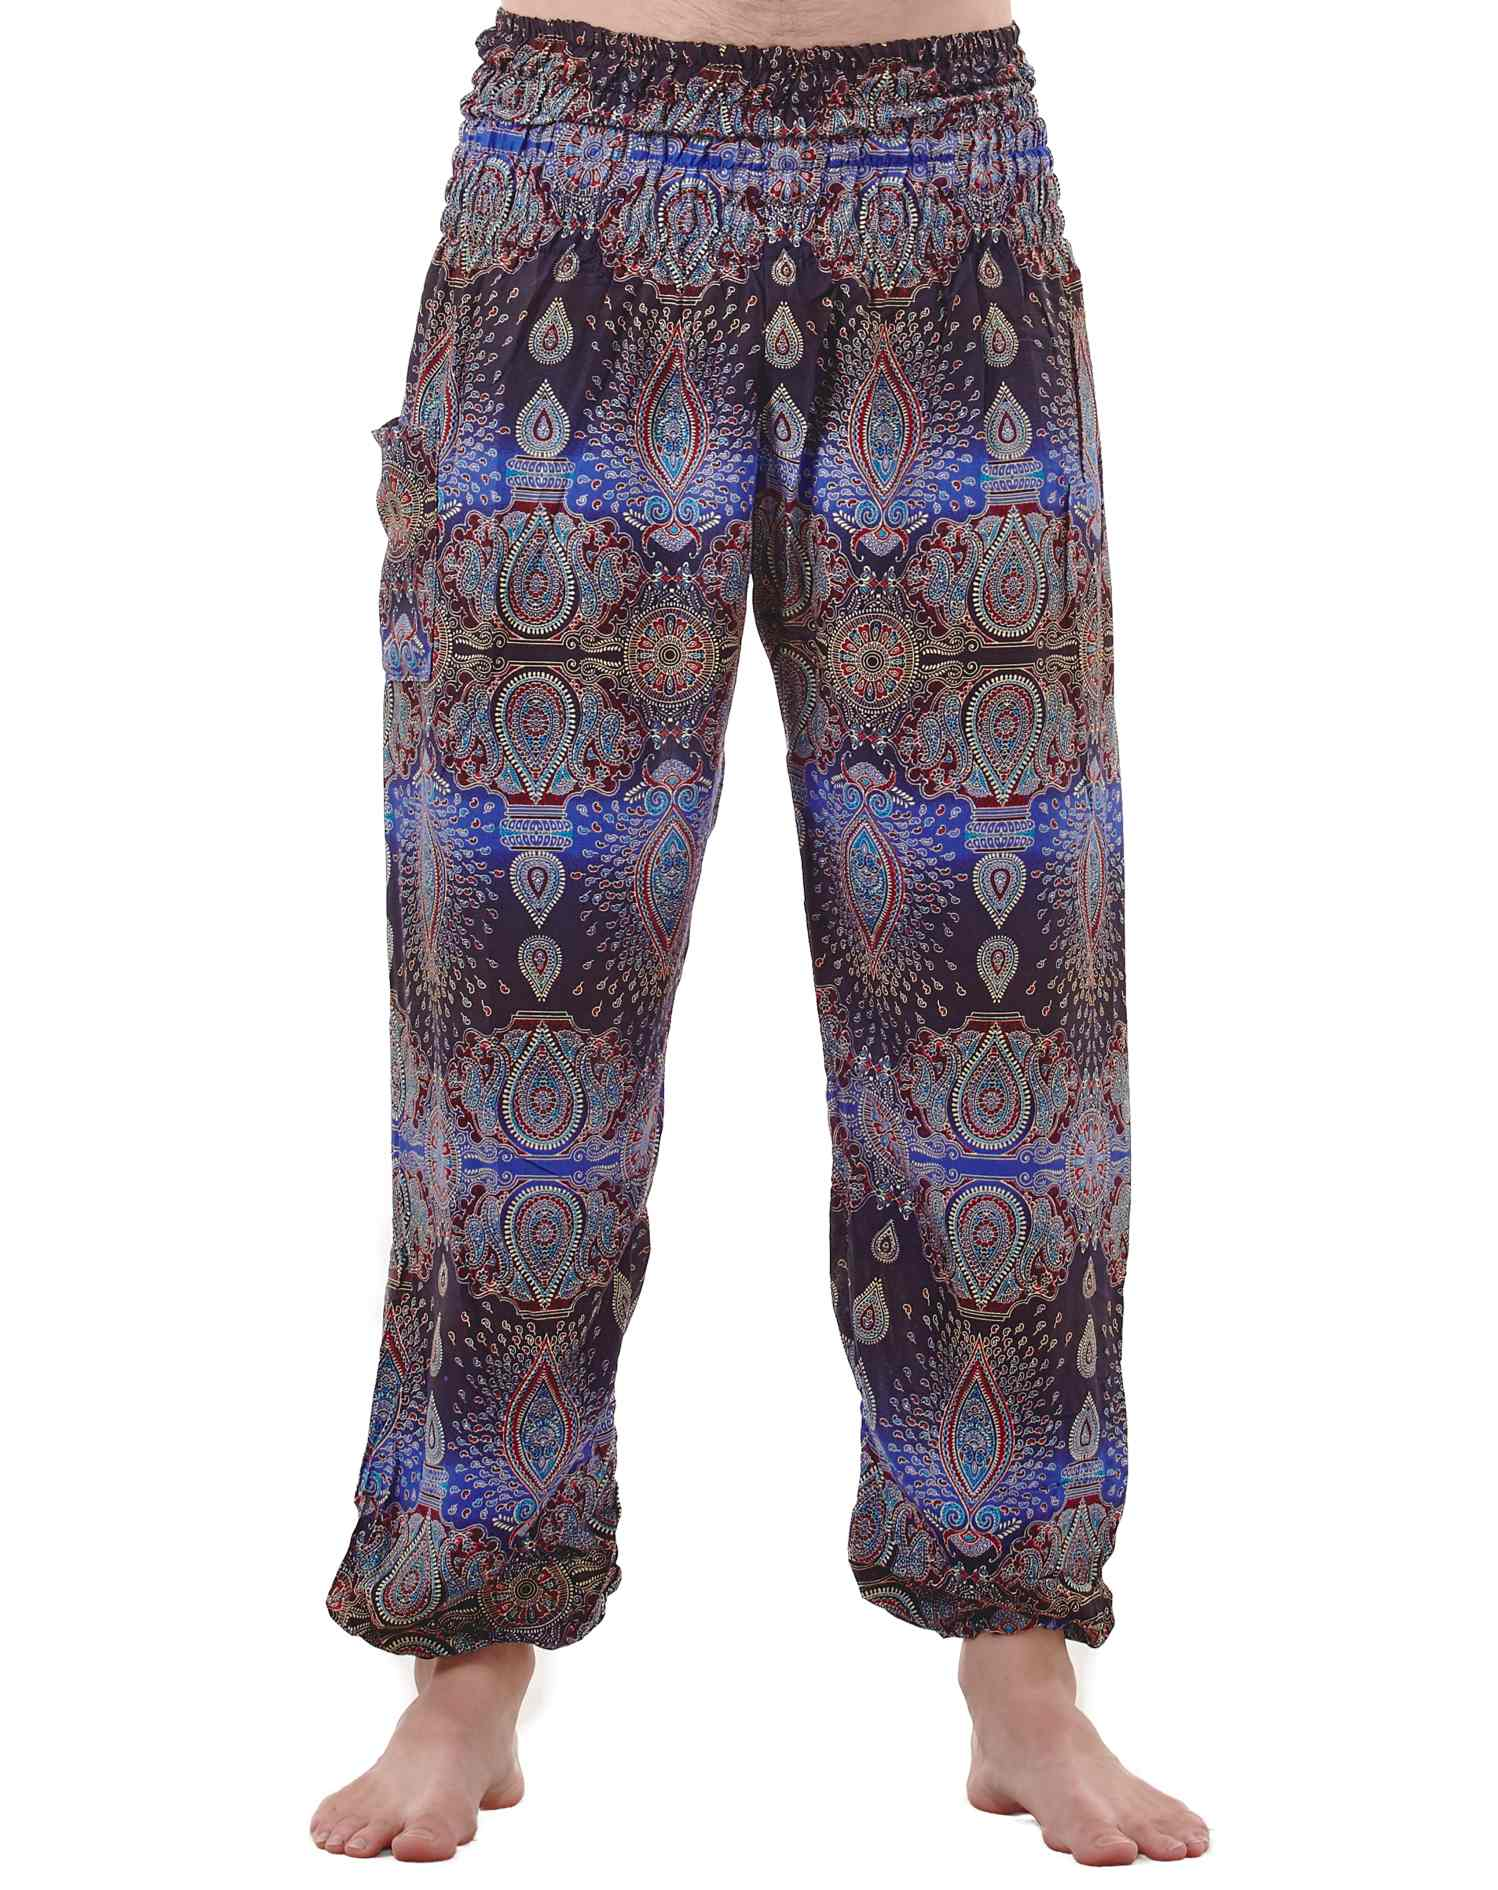 Men's Harem Pants Baggy pants up the coolness factor and comfort level while channeling both street-style and sporty luxe. Drawcord and elasticized waists complement the relaxed fit or these harem pants or genie pants from hip to hem while variegated lengths at .